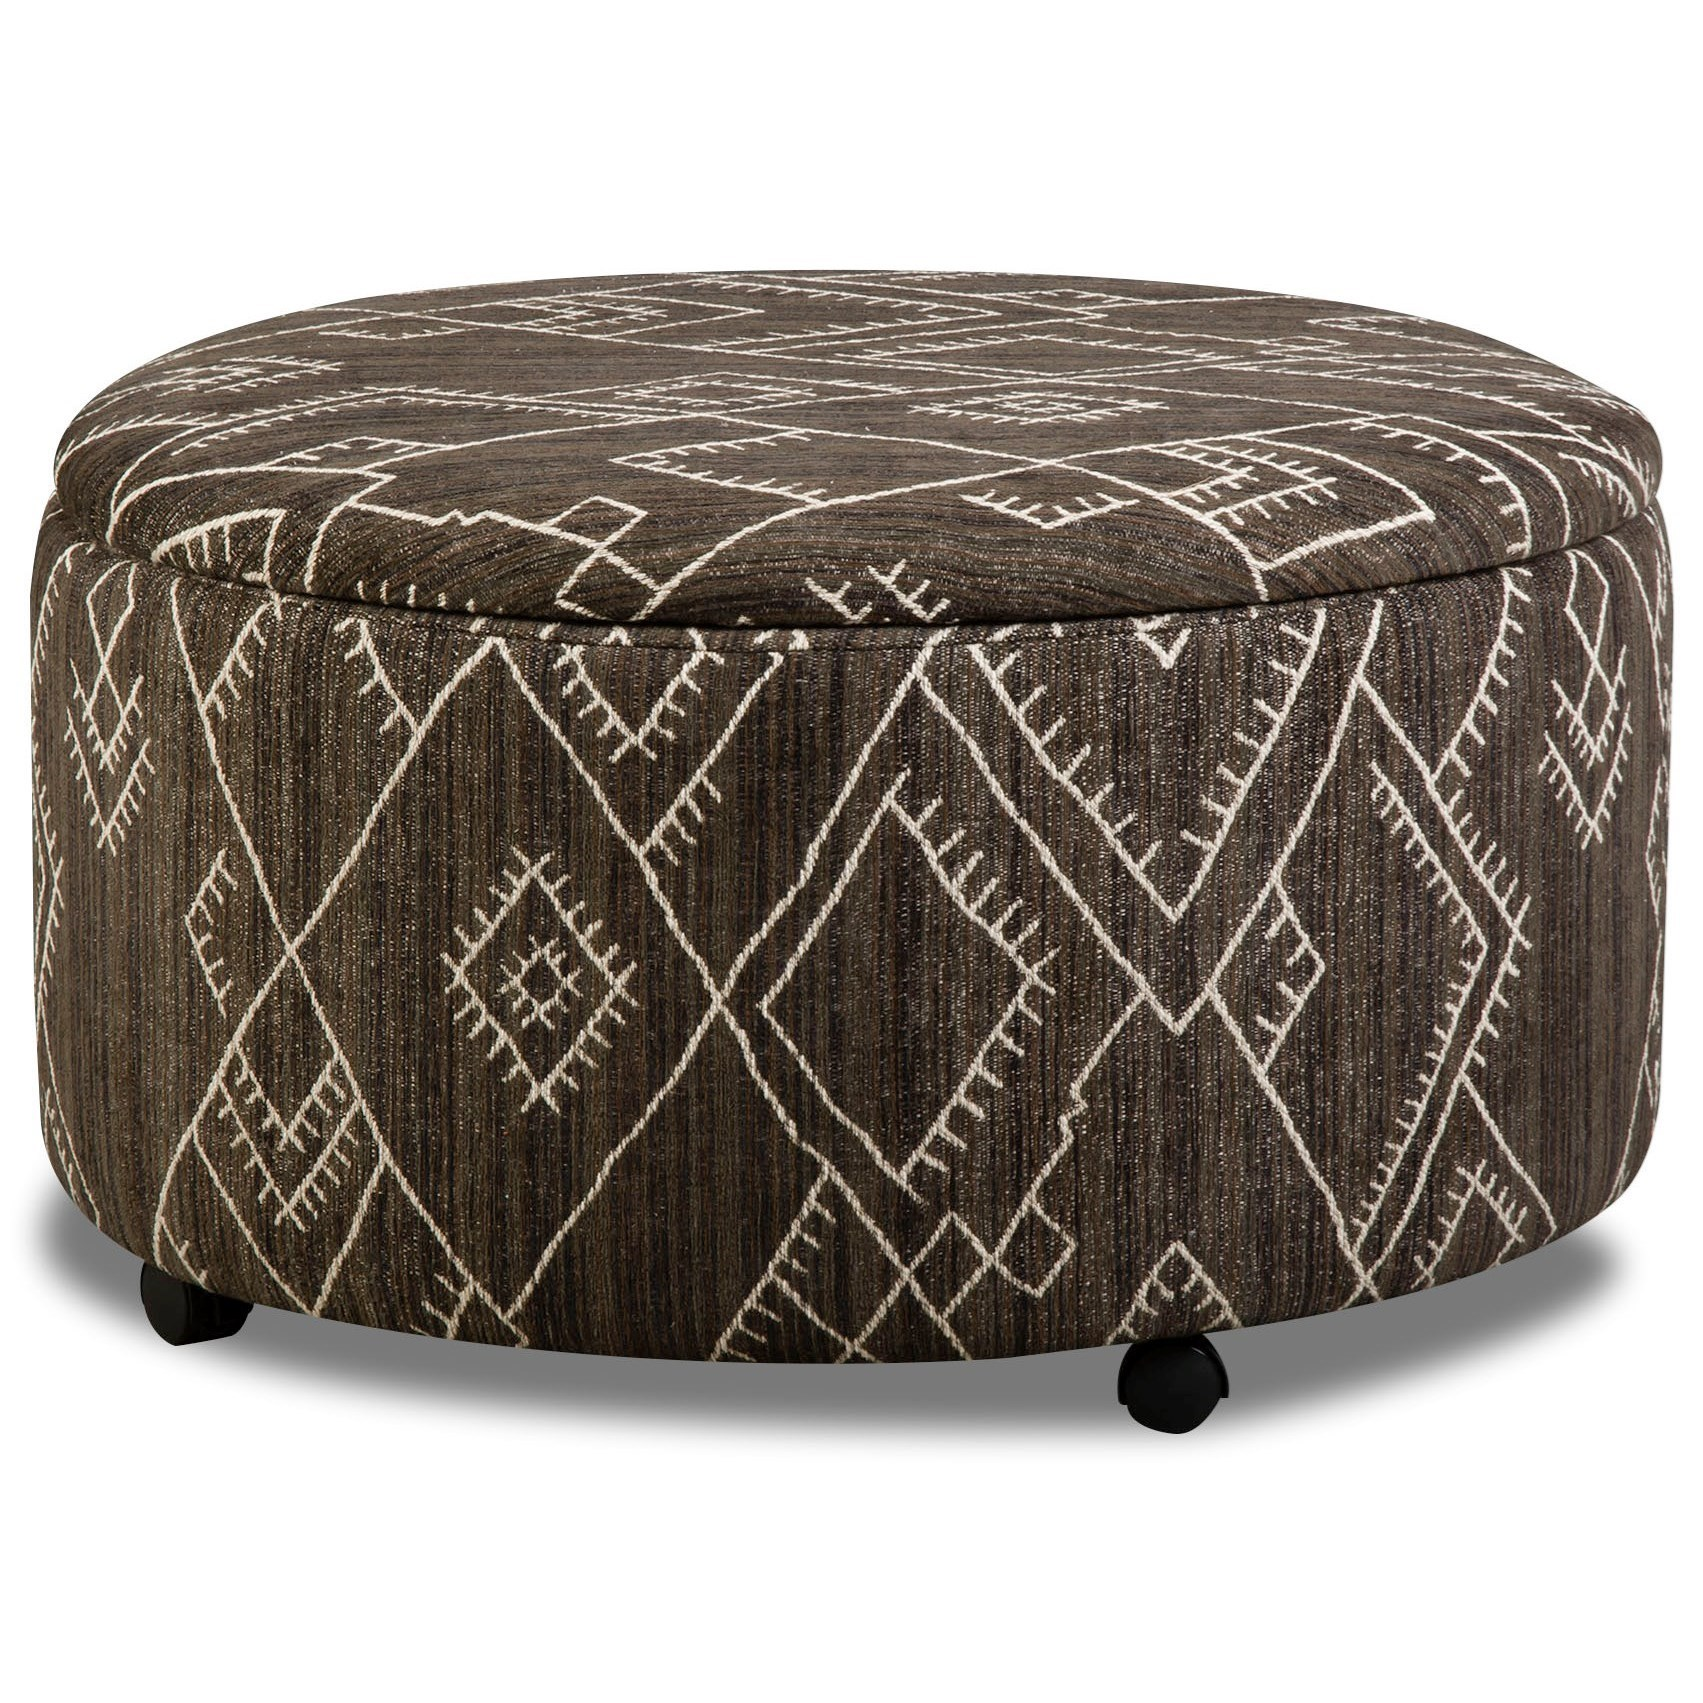 29D0 Round Storage Ottoman by Corinthian at Story & Lee Furniture